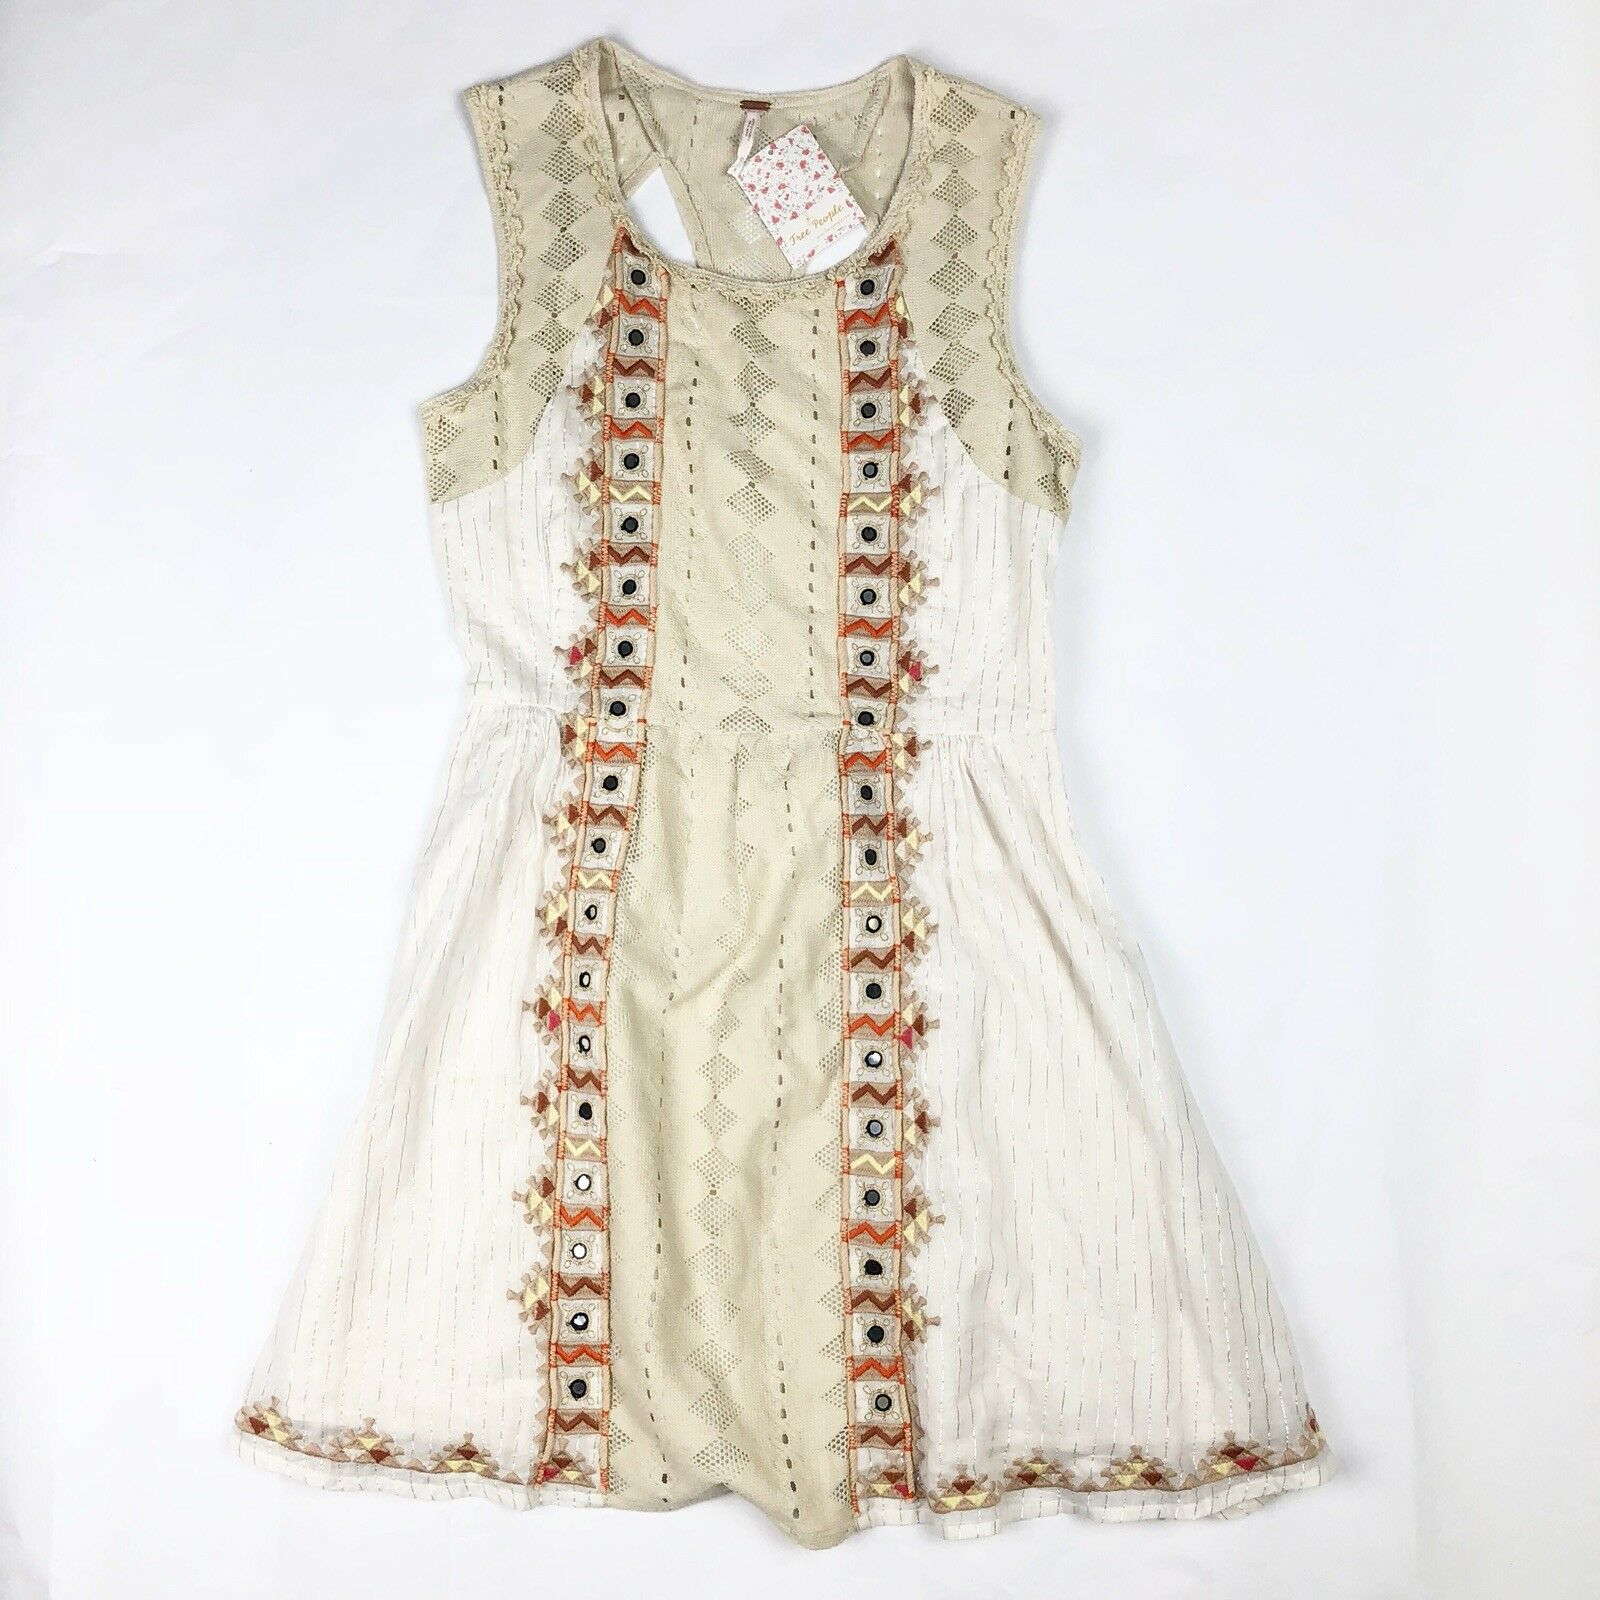 Free People Women's Boho Embroidered Water Lily Dress Metallic Ivory Size 4 NWT